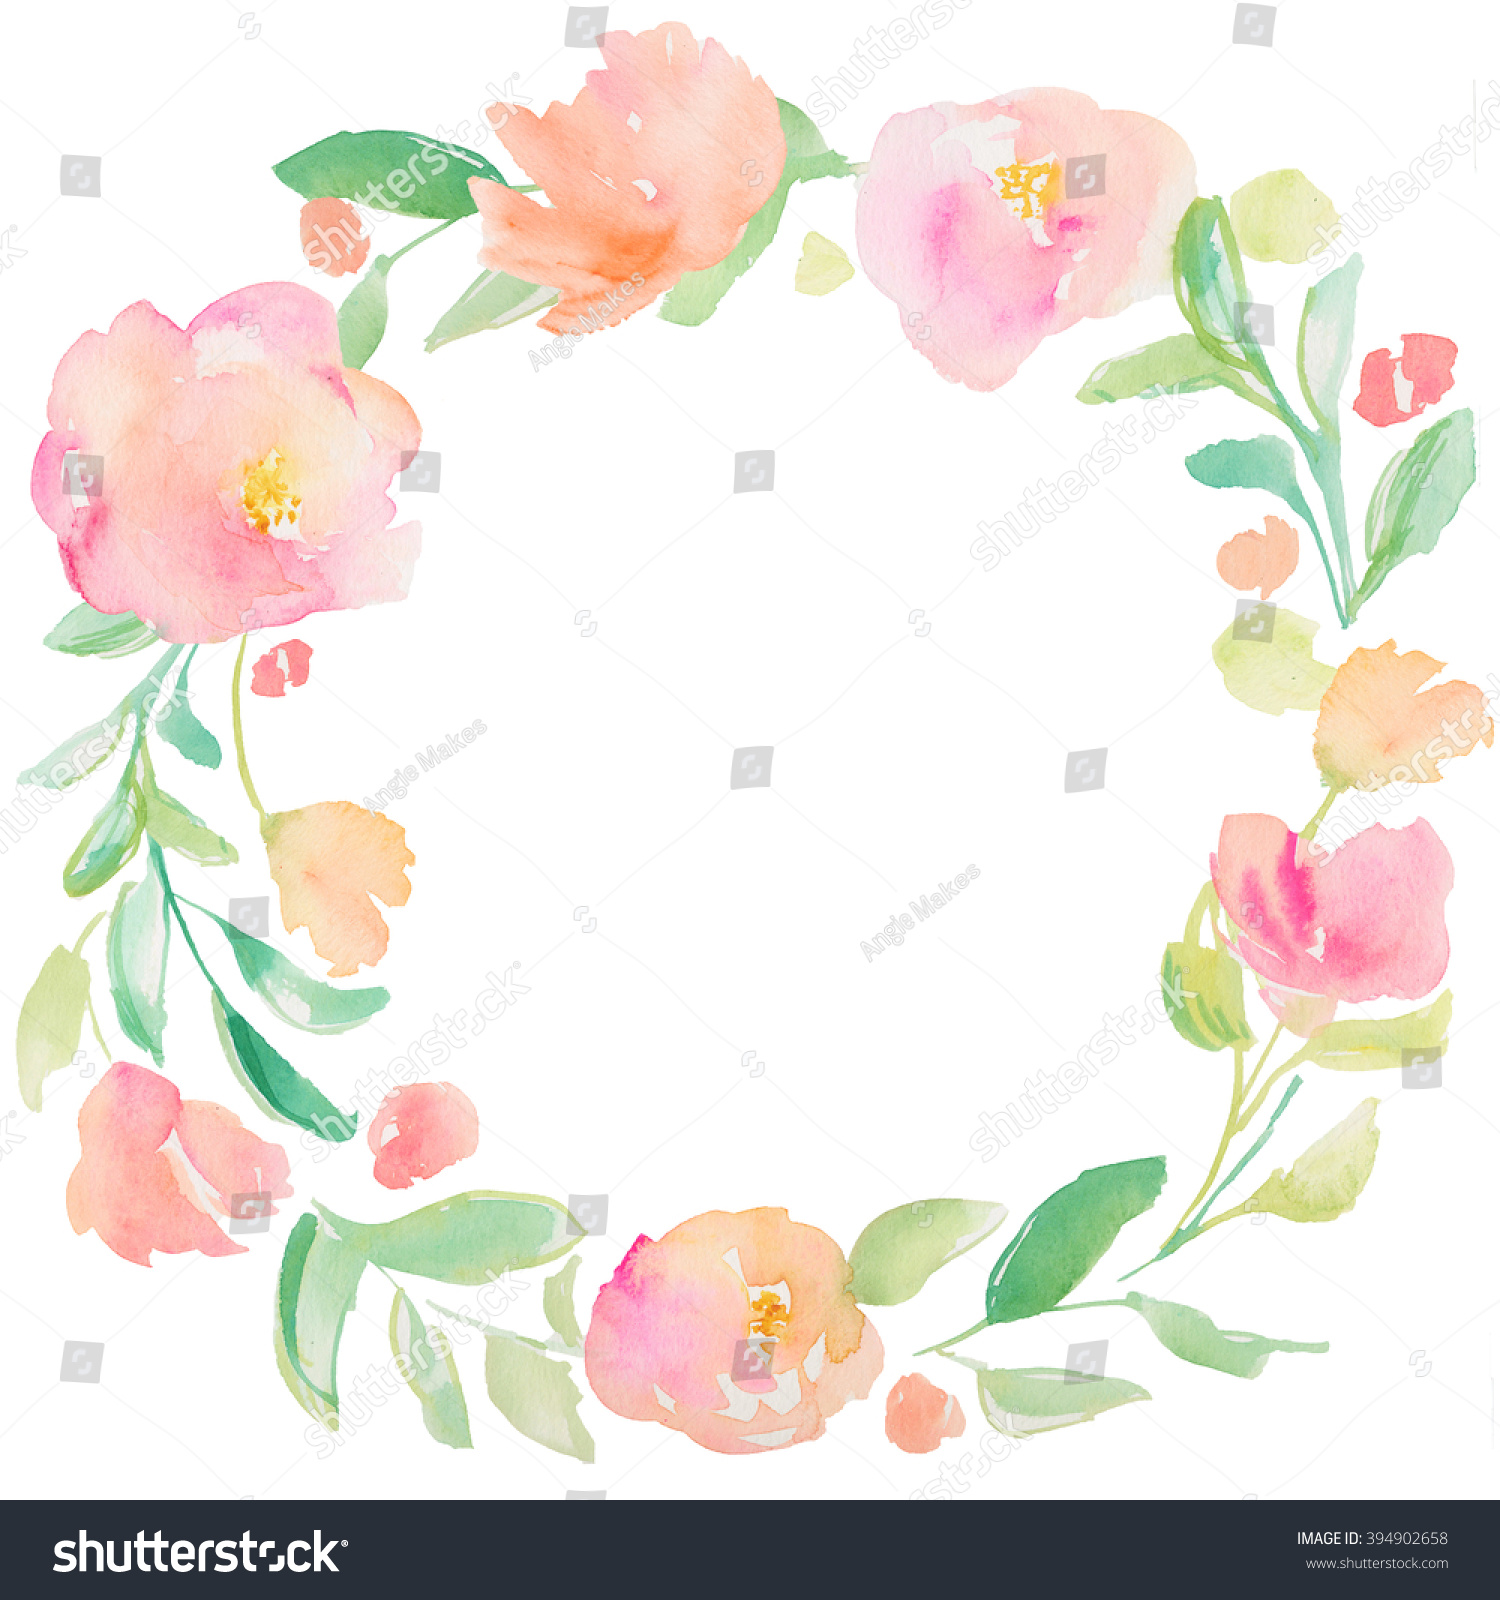 Watercolor Frame With Purple Flower Petal Vectorized  : stock photo round watercolor wreath flower wreath circular watercolor flower wreath painted flower wreath 394902658 from vacances-mediterranee.info size 1500 x 1600 jpeg 531kB